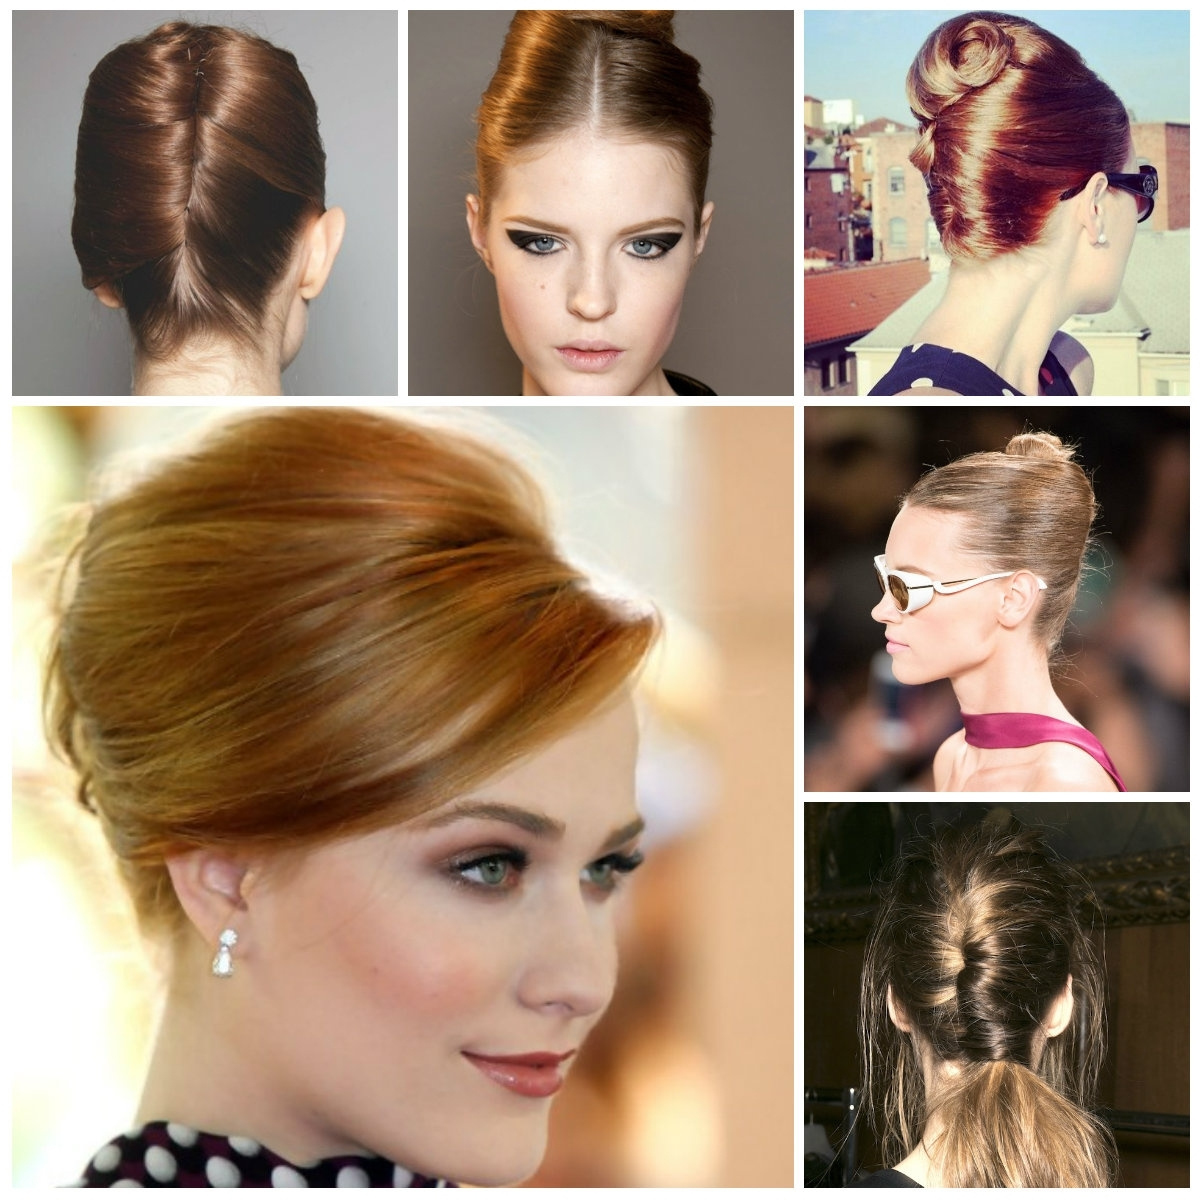 2017 Trendy French Twist Hairstyles | New Haircuts To Try For 2018 With Regard To French Twist Updo Hairstyles For Short Hair (View 3 of 15)